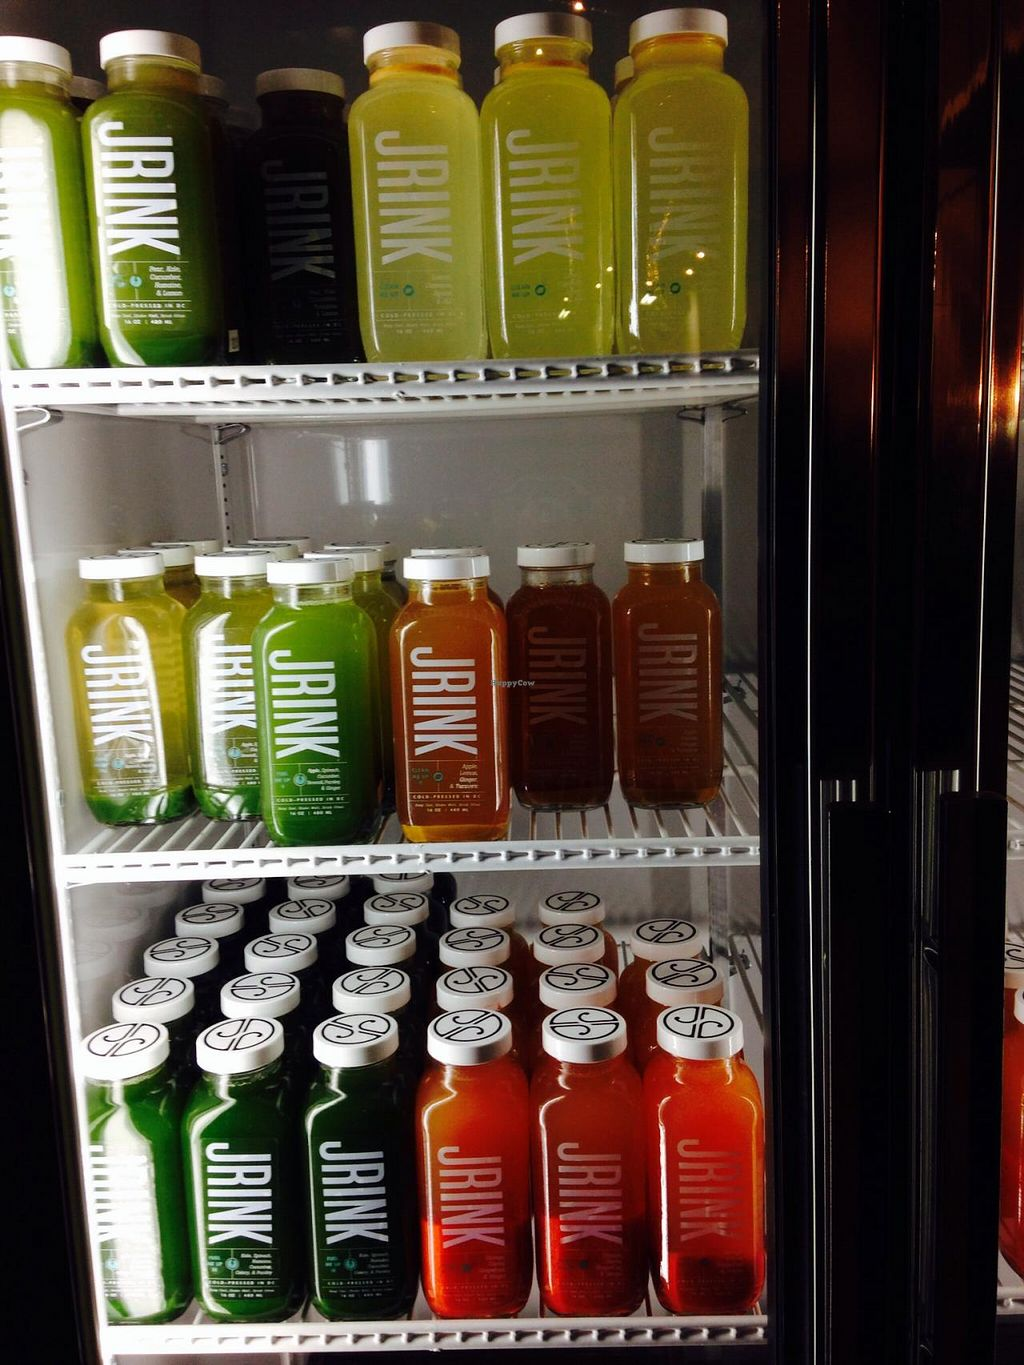 """Photo of Jrink Juicery - Dupont  by <a href=""""/members/profile/cookiem"""">cookiem</a> <br/>Fridge one <br/> February 20, 2015  - <a href='/contact/abuse/image/55837/93584'>Report</a>"""